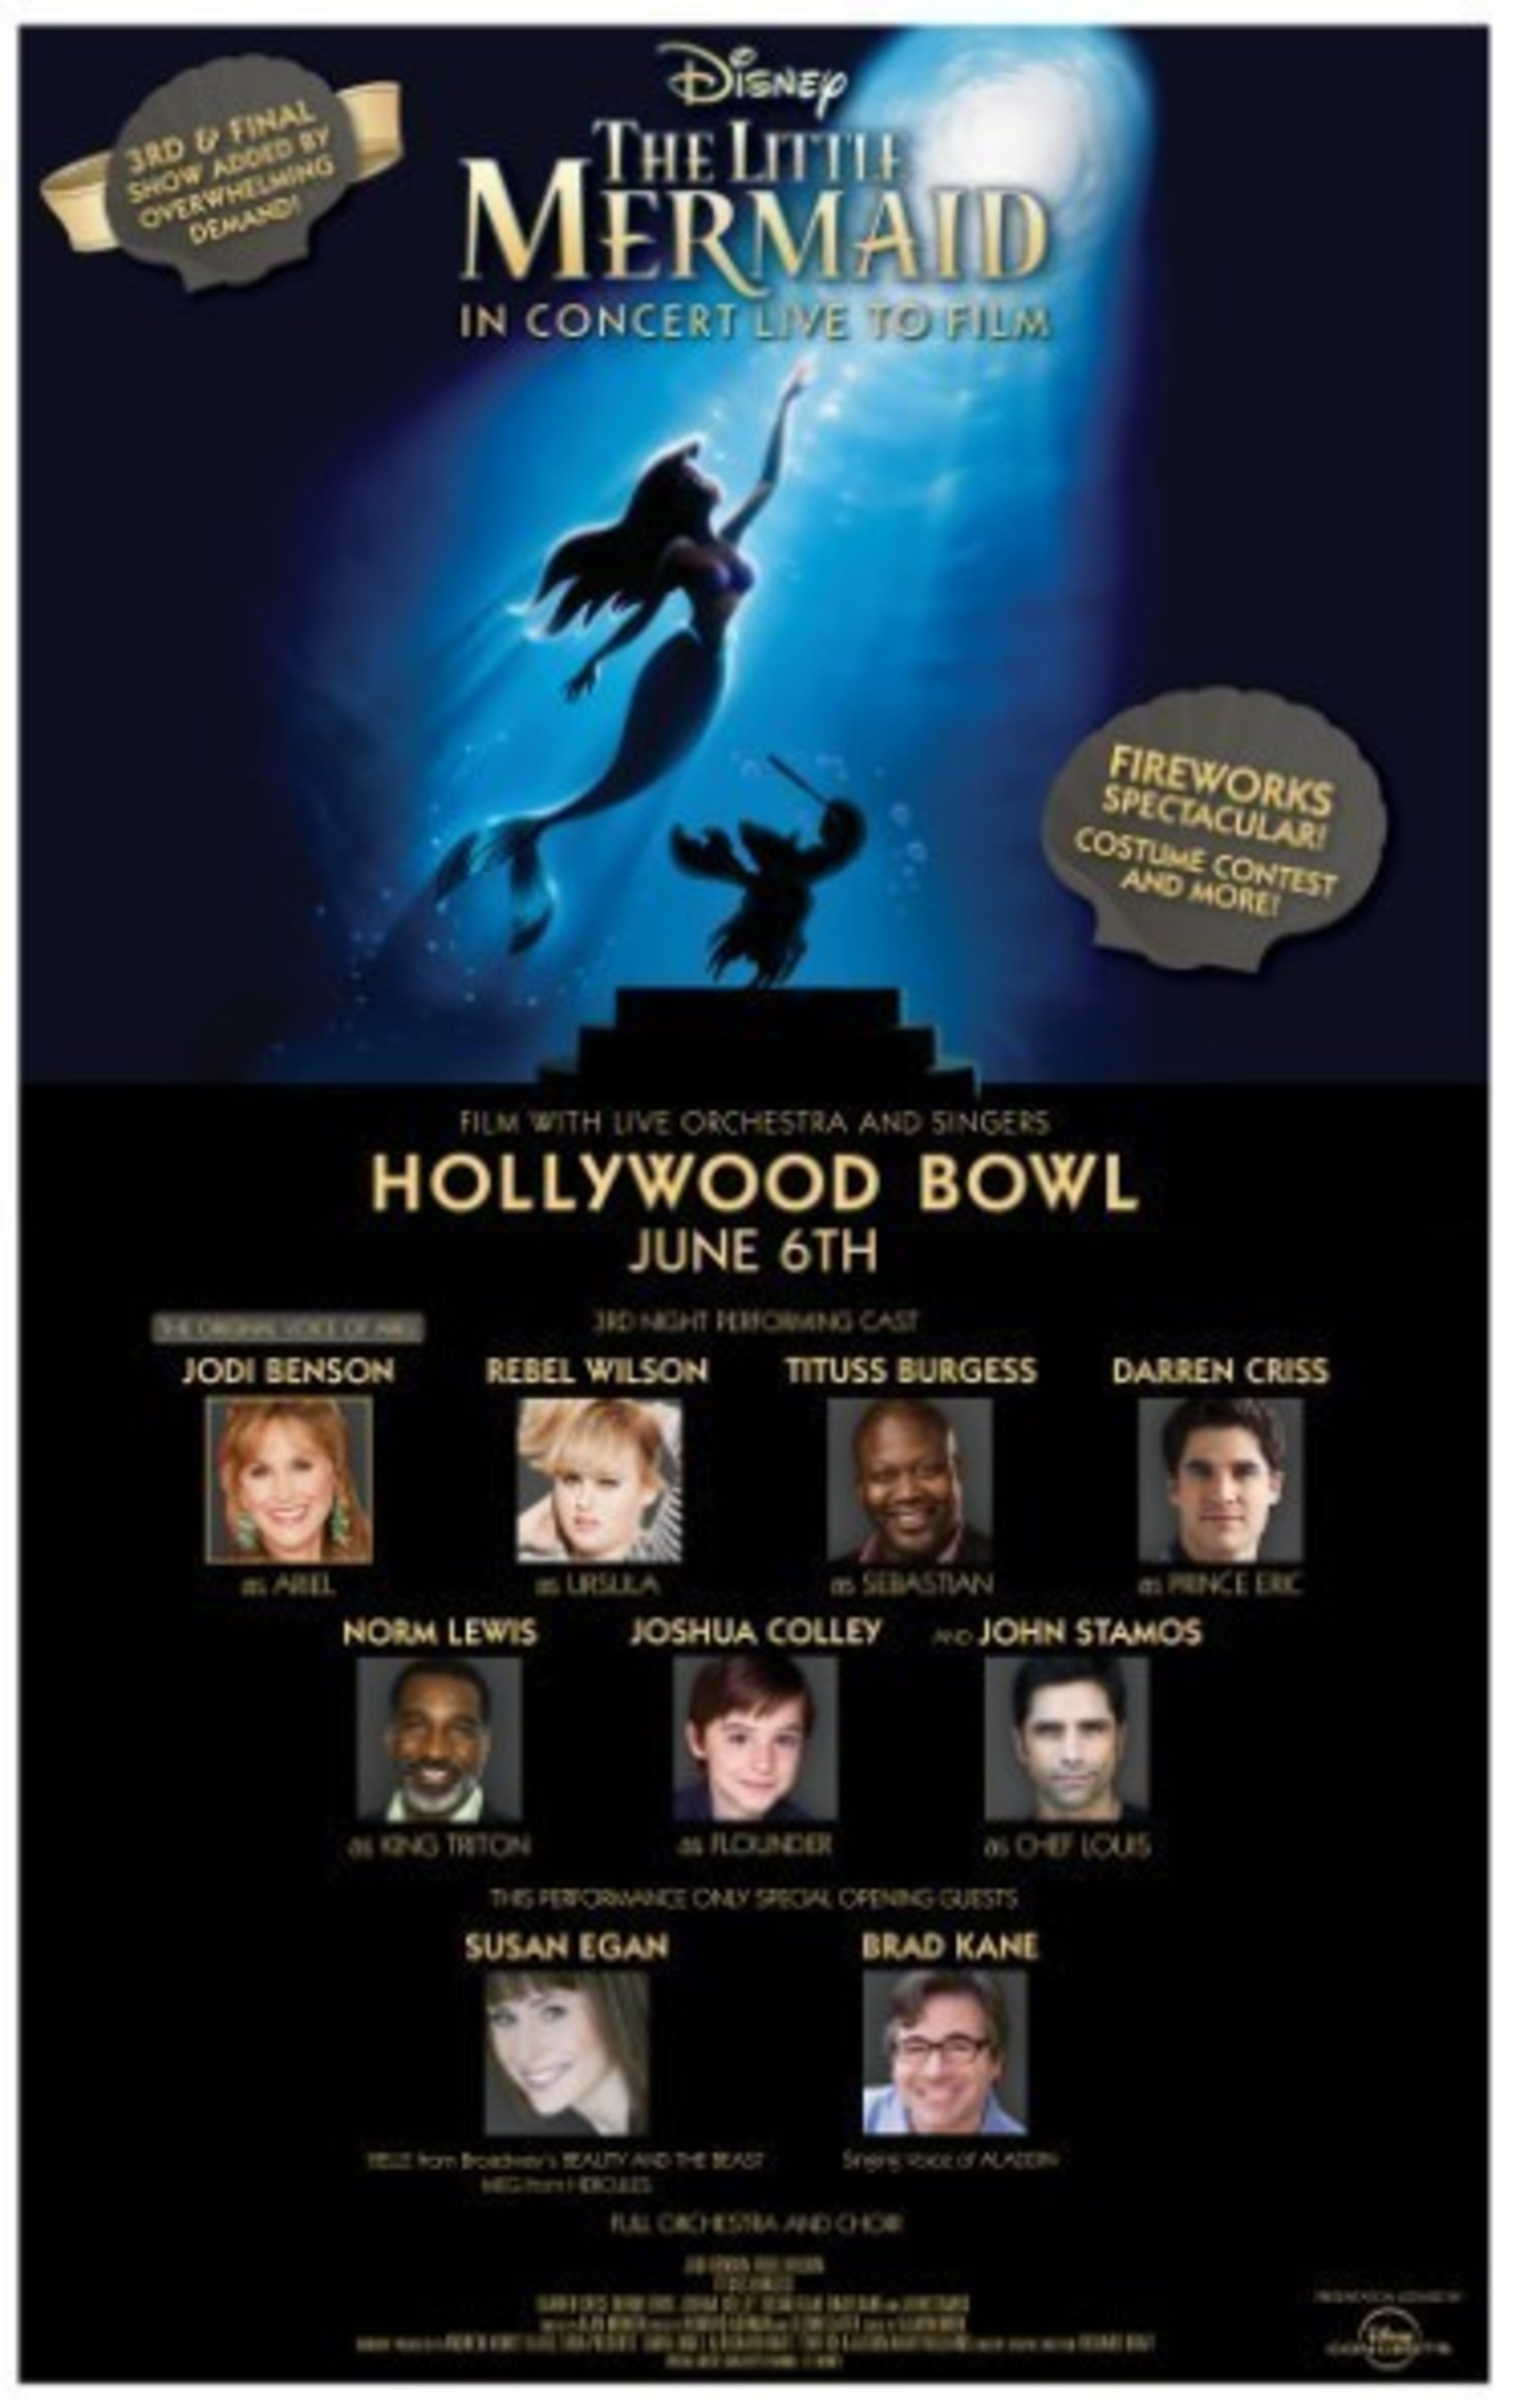 'DISNEY'S THE LITTLE MERMAID LIVE IN CONCERT' PERFORMED WITH ORCHESTRA LIVE TO FILM, MONDAY, JUNE 6